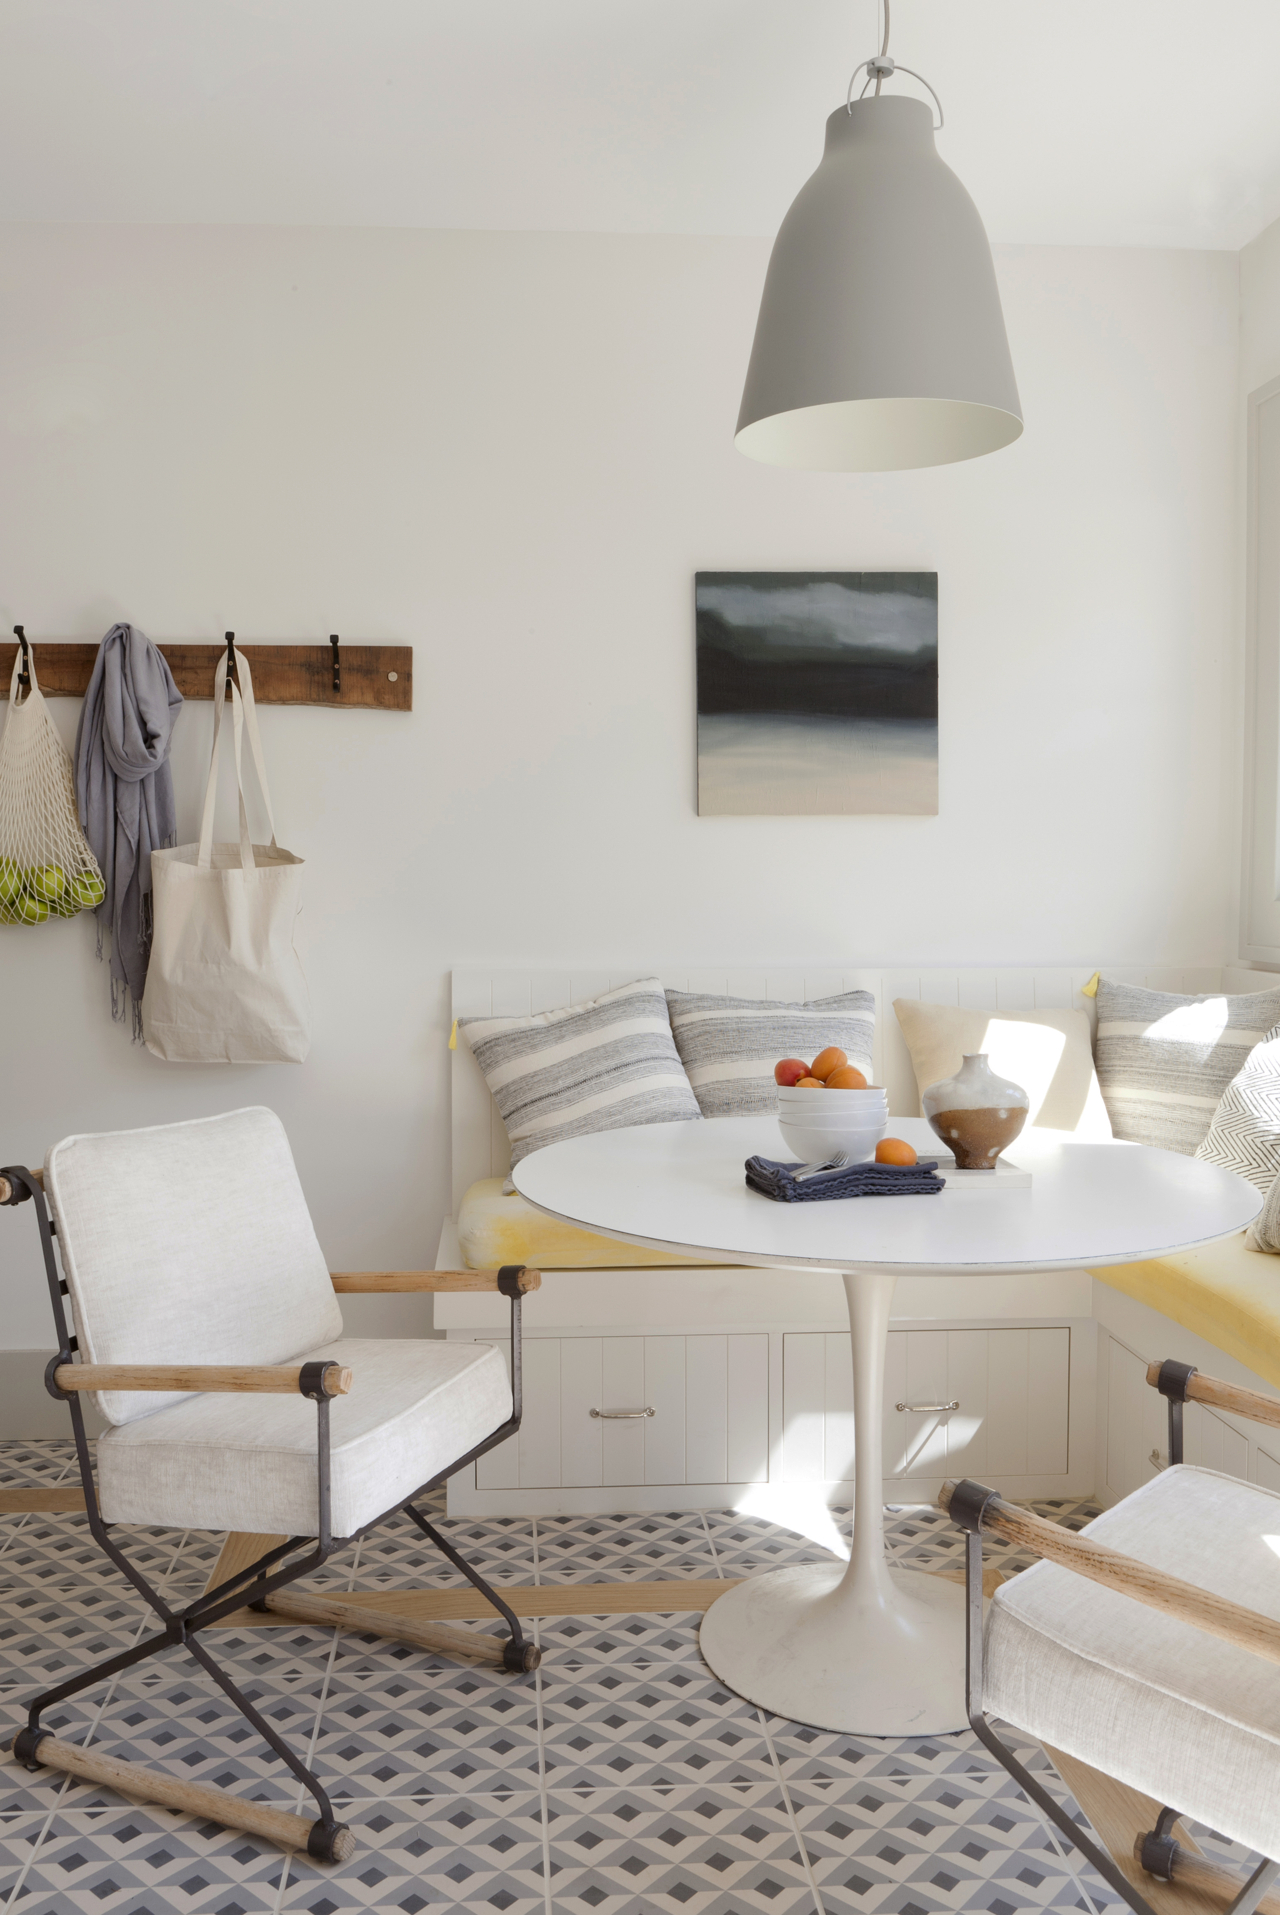 Convenient banquette fit for a small table